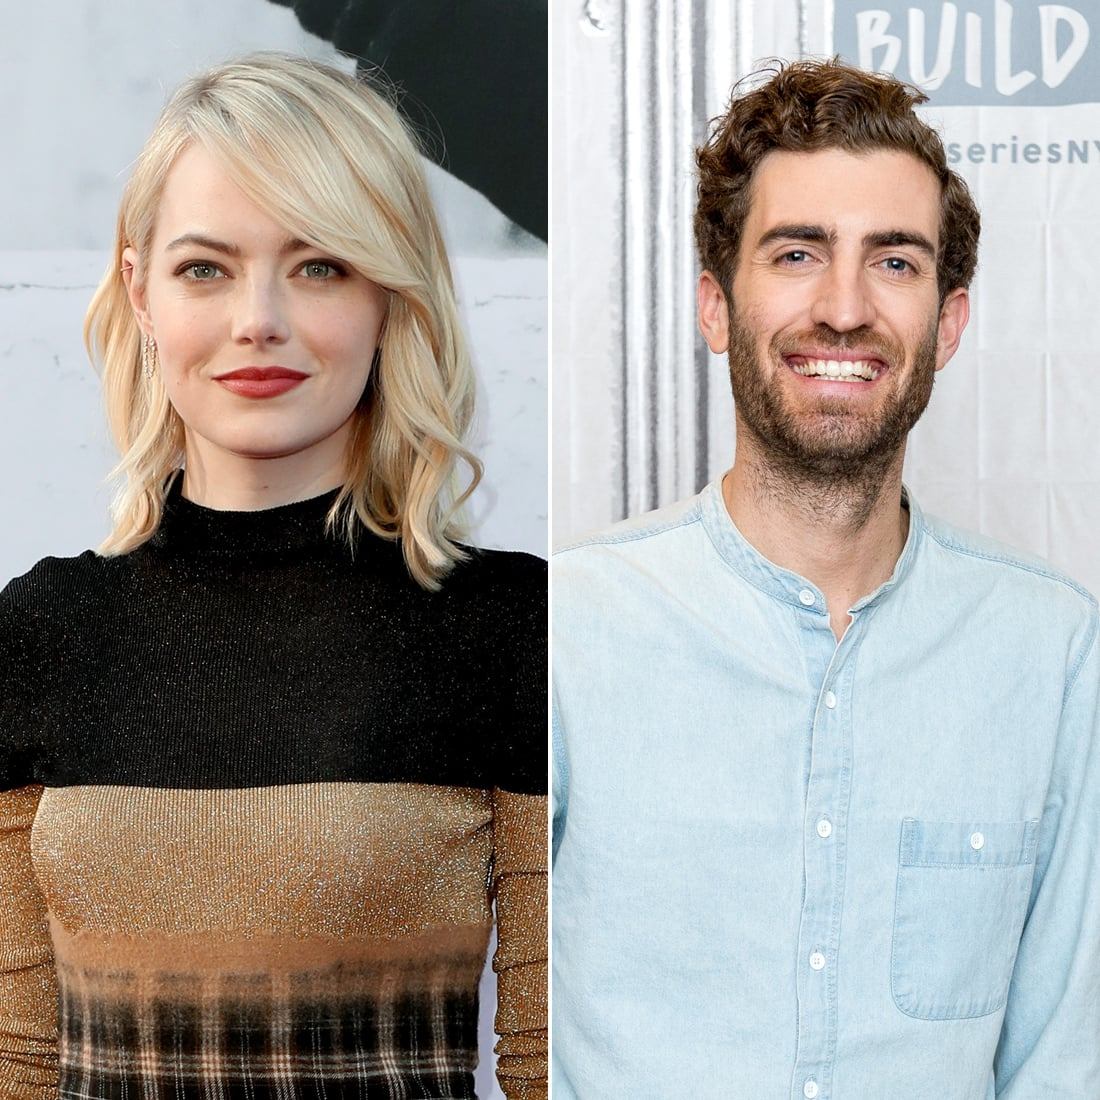 dating emma stone On the heels of superbad, stone appears in the rocker, alongside the office's rainn wilson and teddy geiger, whom she begins dating off screen.